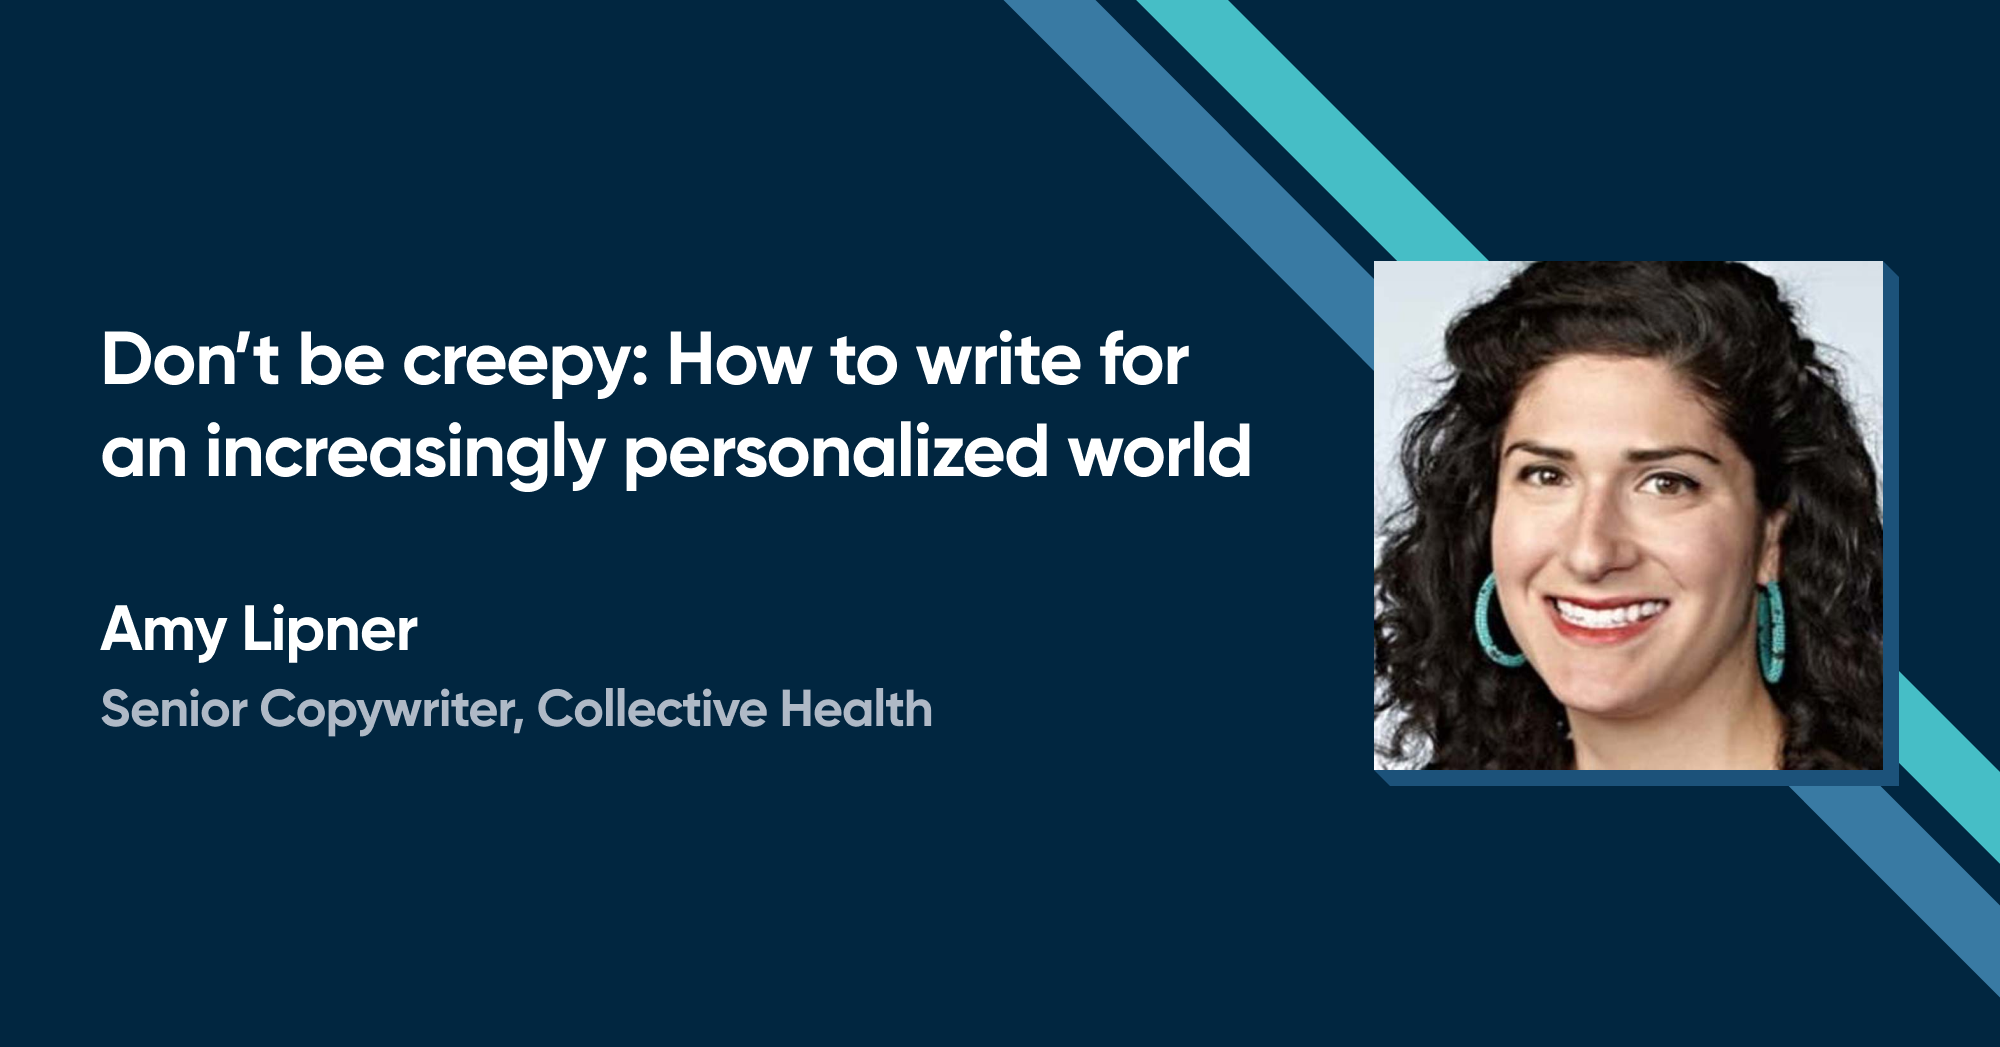 Amy Lipner - Don't be creepy: How to write for an increasingly personalized world